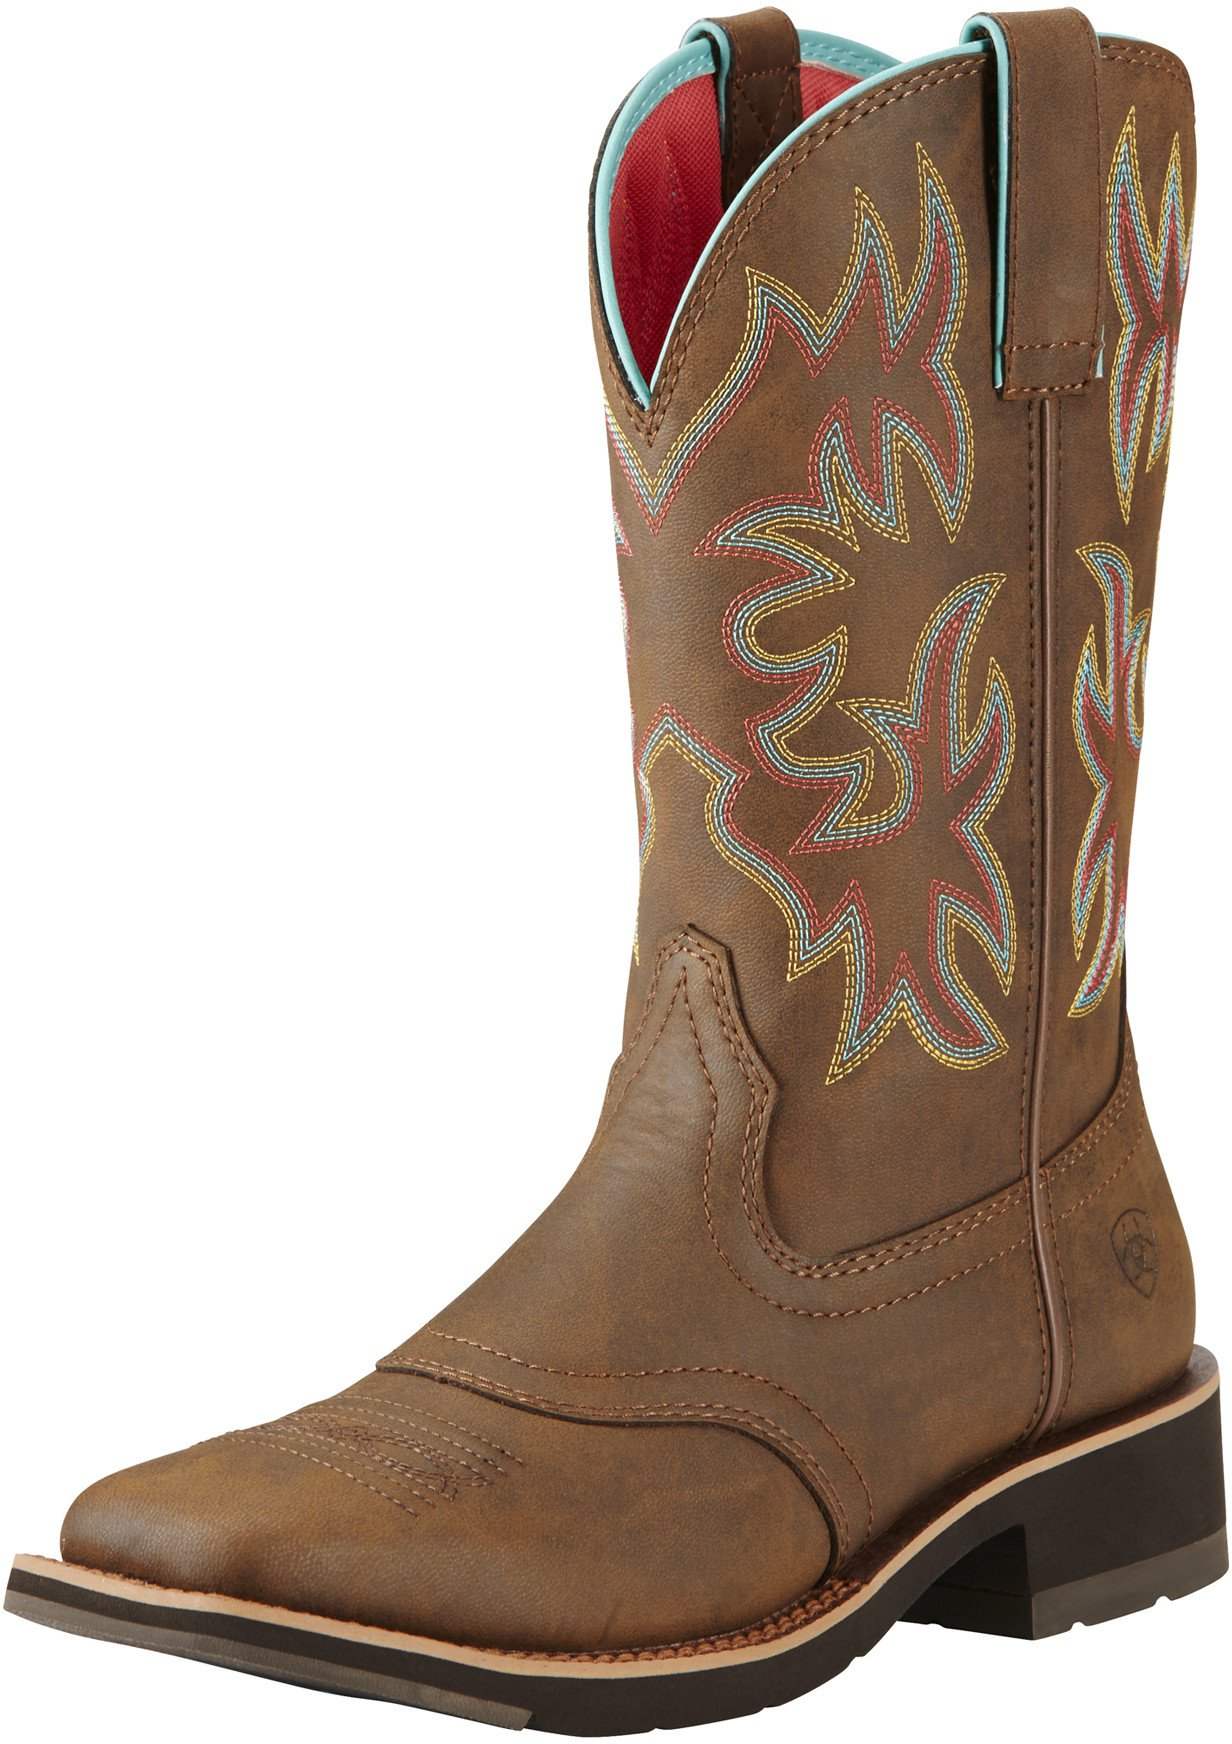 Ariat Women's Delilah Work Boot, Toasted Brown, 9 B US by Ariat